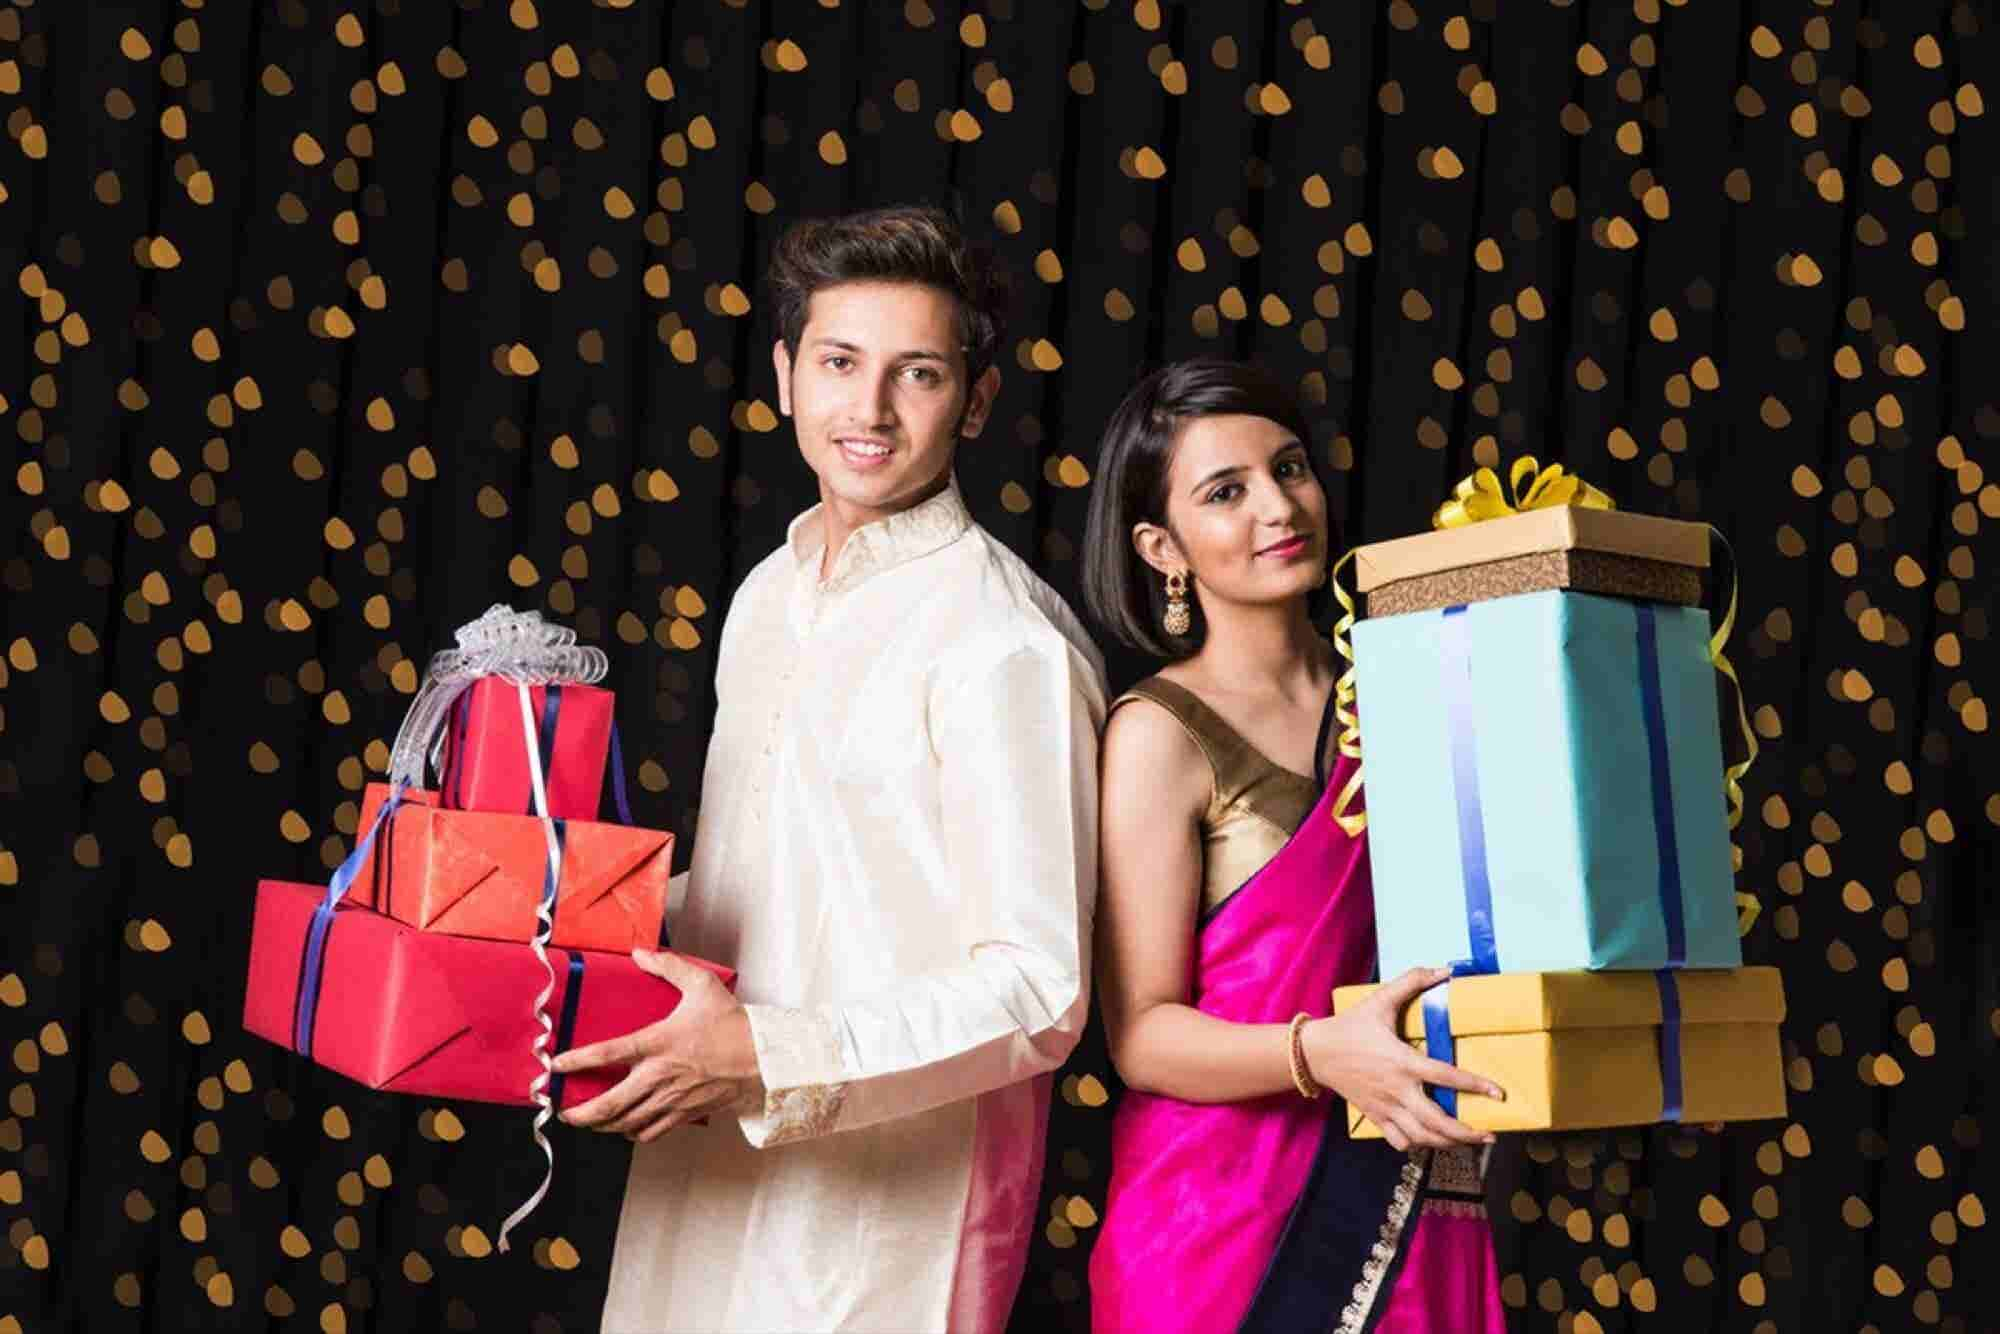 It's Diwali In India But For Entrepreneurs 'The Show Must Go On'